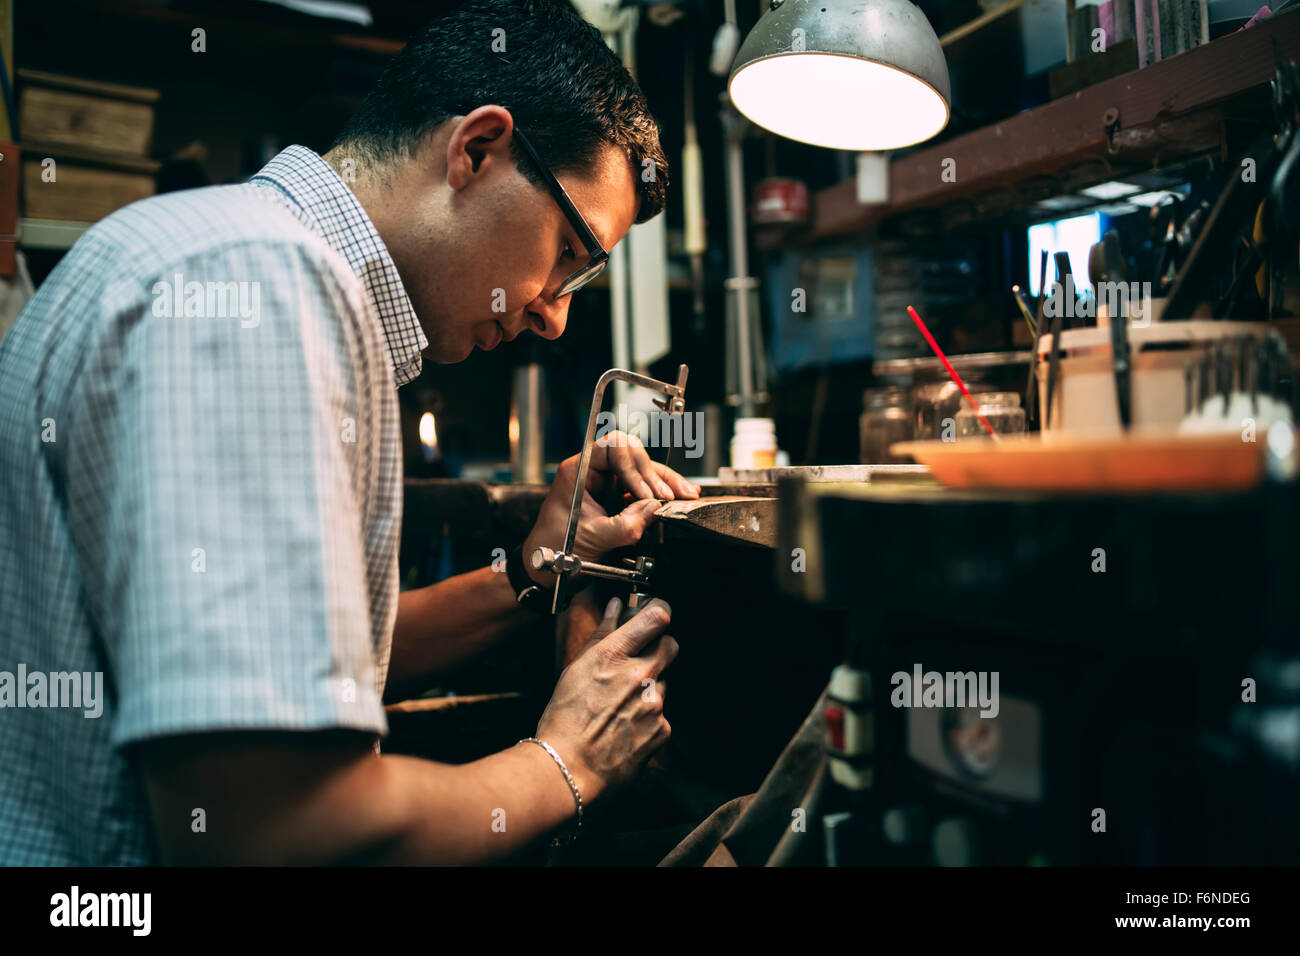 Handyman working on workbench with tools - Stock Image